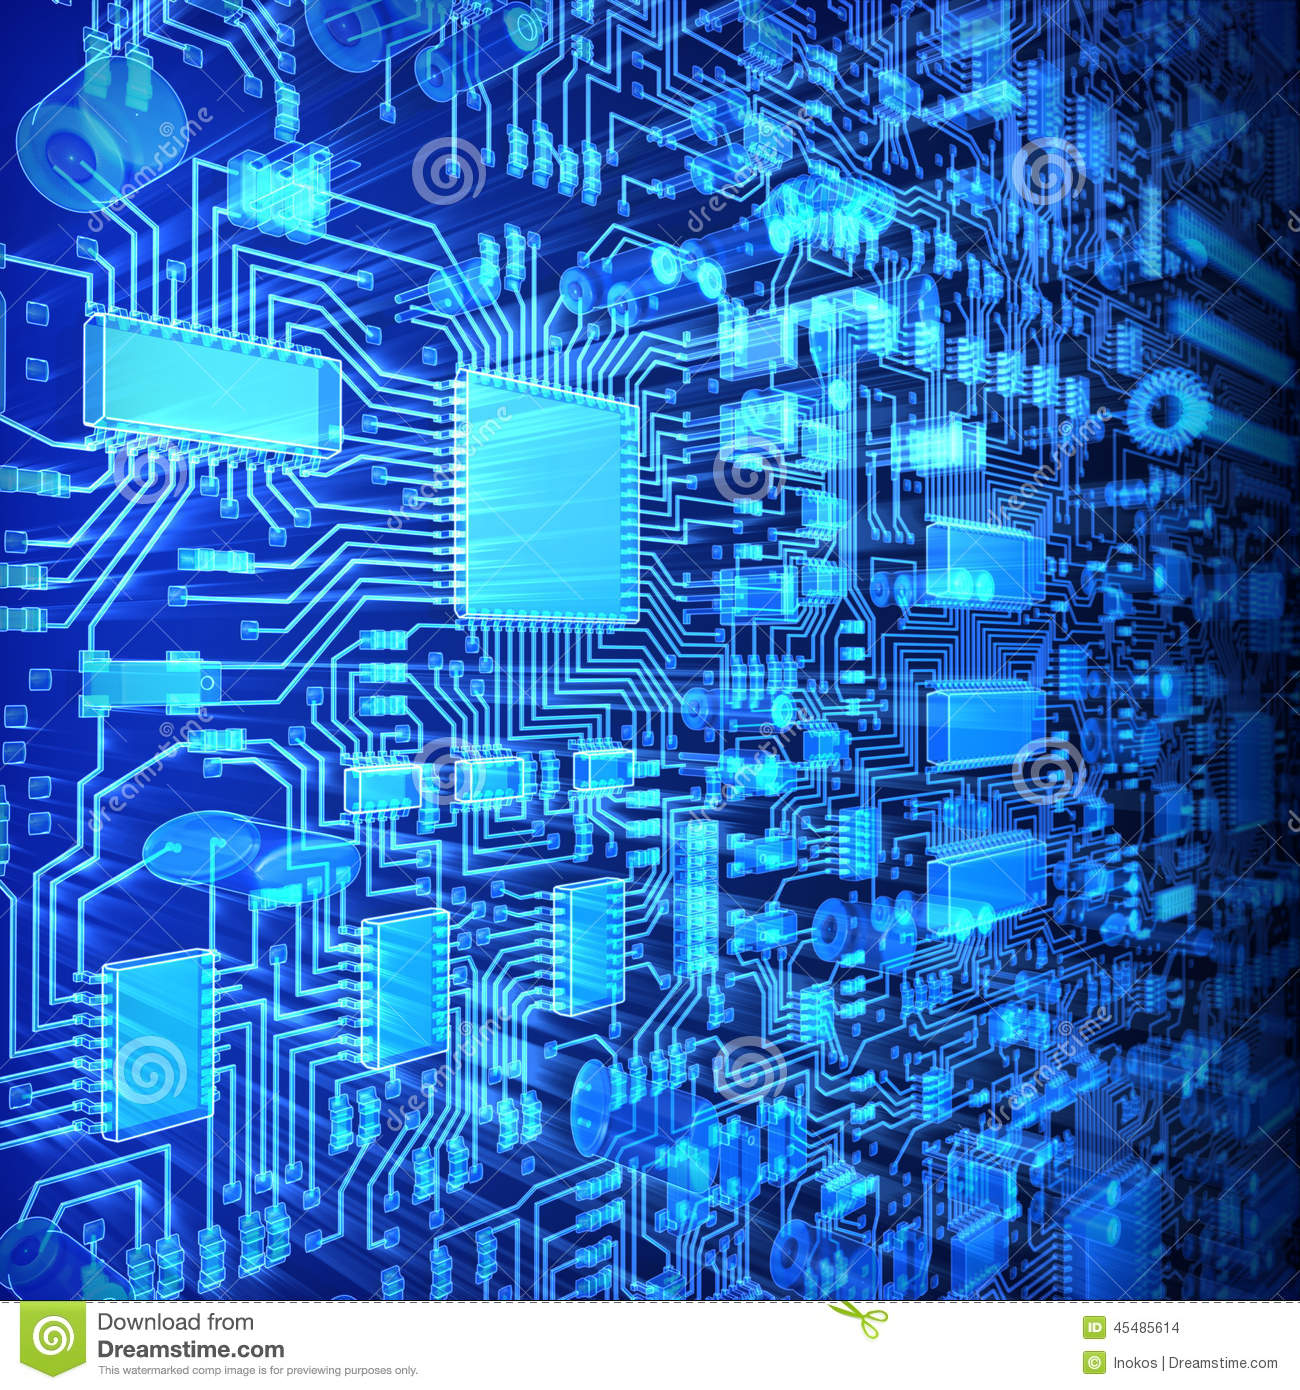 3d Colour Wallpaper Free Download Fantasy Glowing Circuit Board Or Mainboard Technology